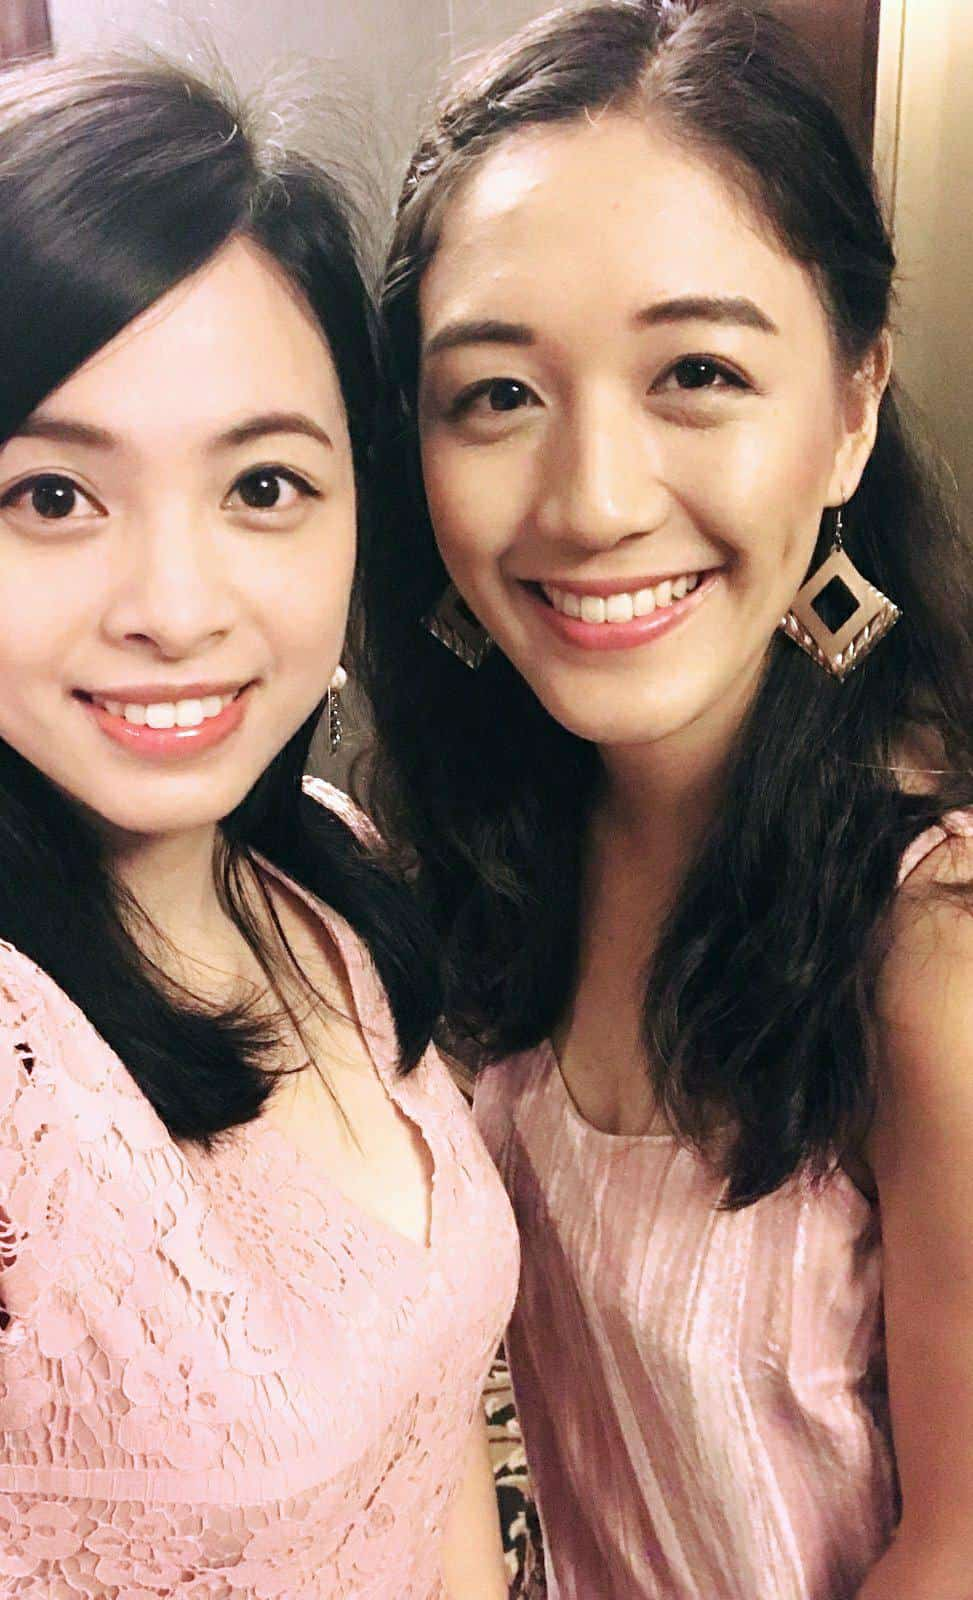 My First Thai Wedding Experience with My Best Friend